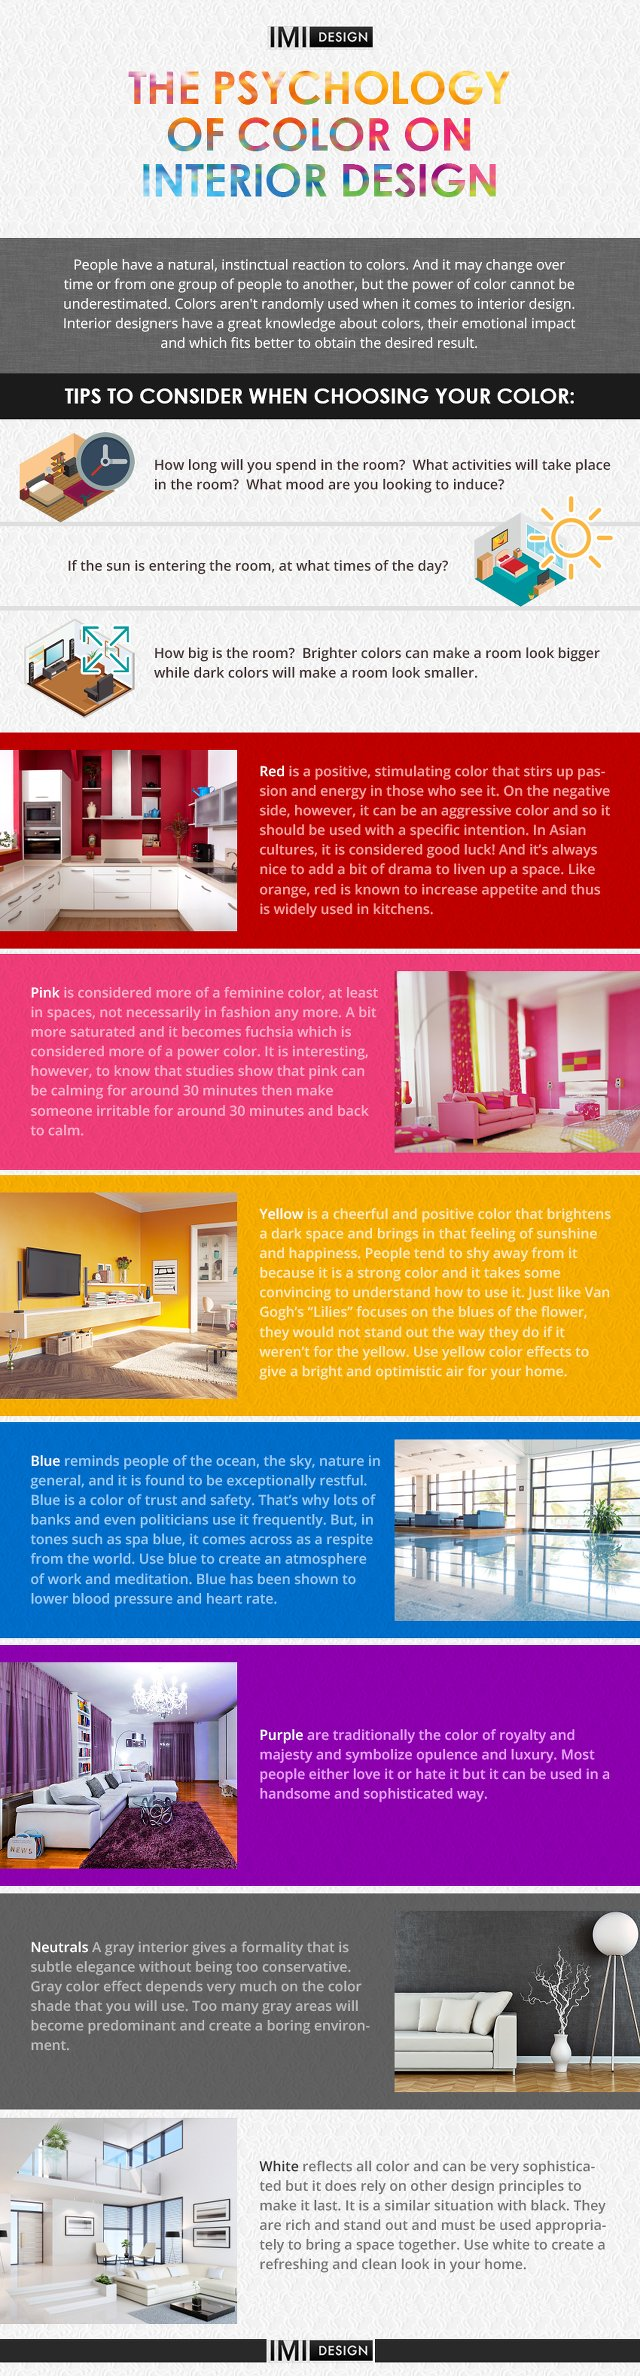 Interior Design Color Psychology